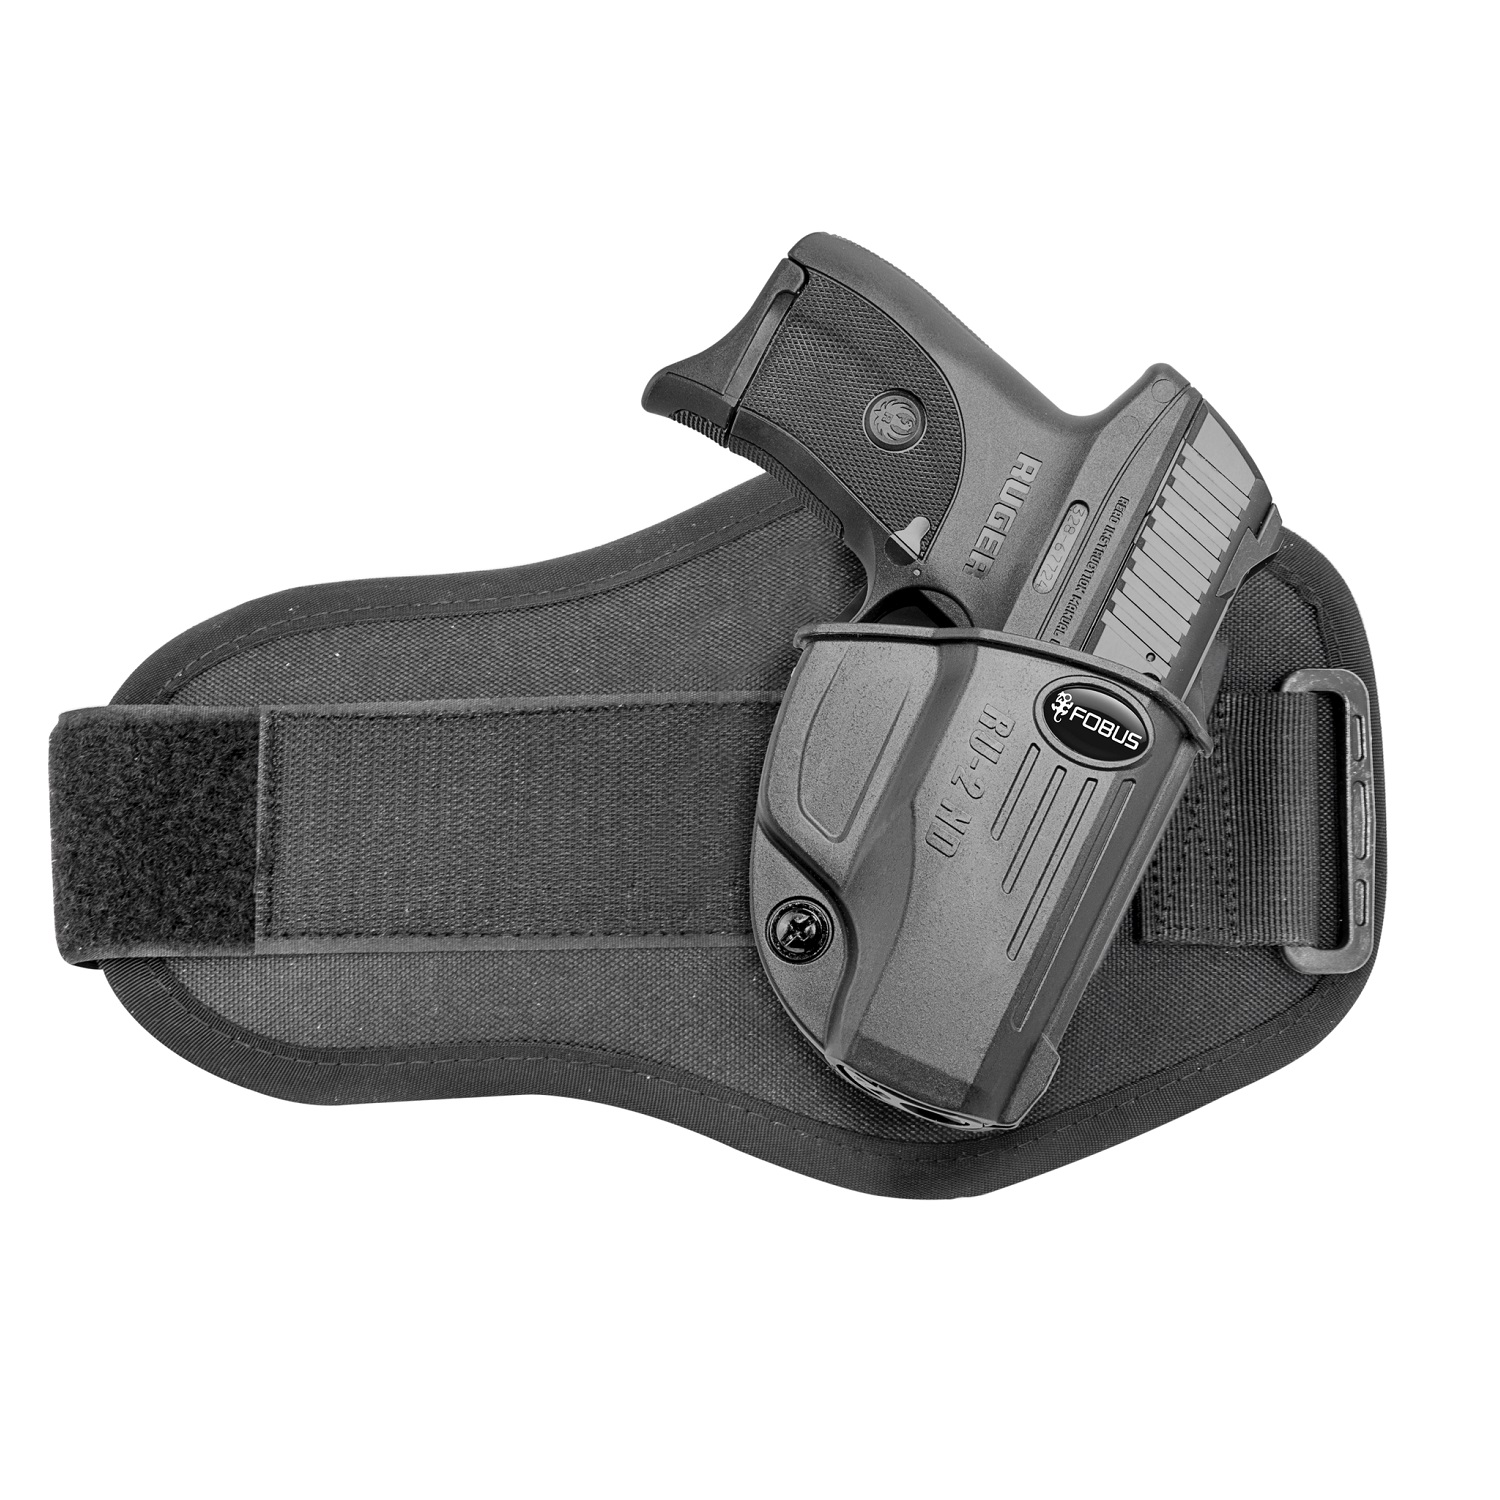 Fobus Evolution Ankle Holster-Ruger EC9s LC380 LC9 LC9s Pro by Fobus Holsters